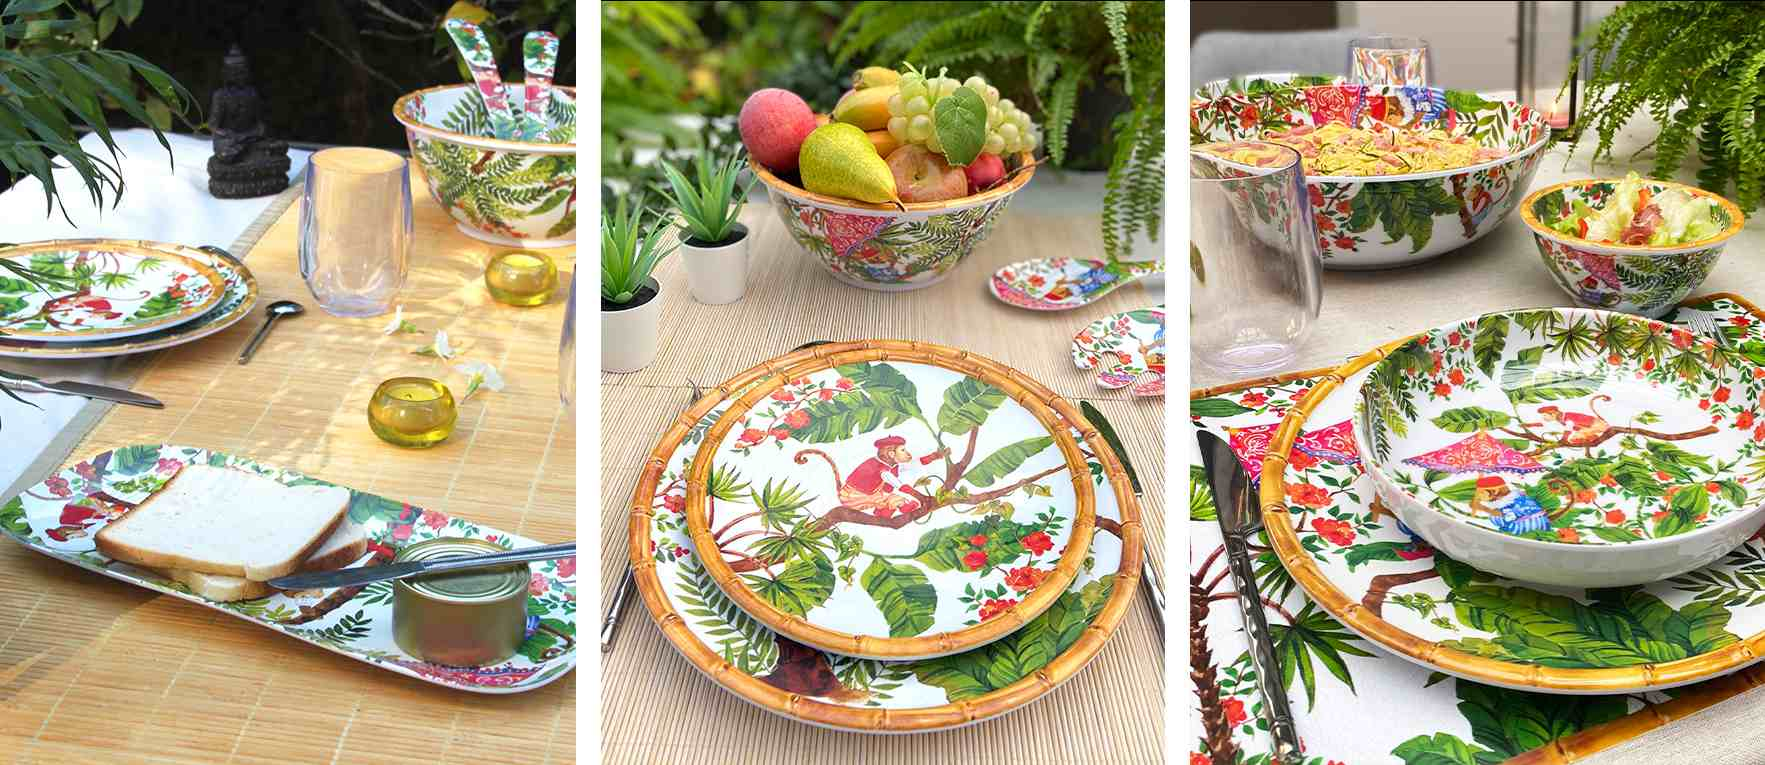 crockery melamine monkeys: plate, tray, dish...